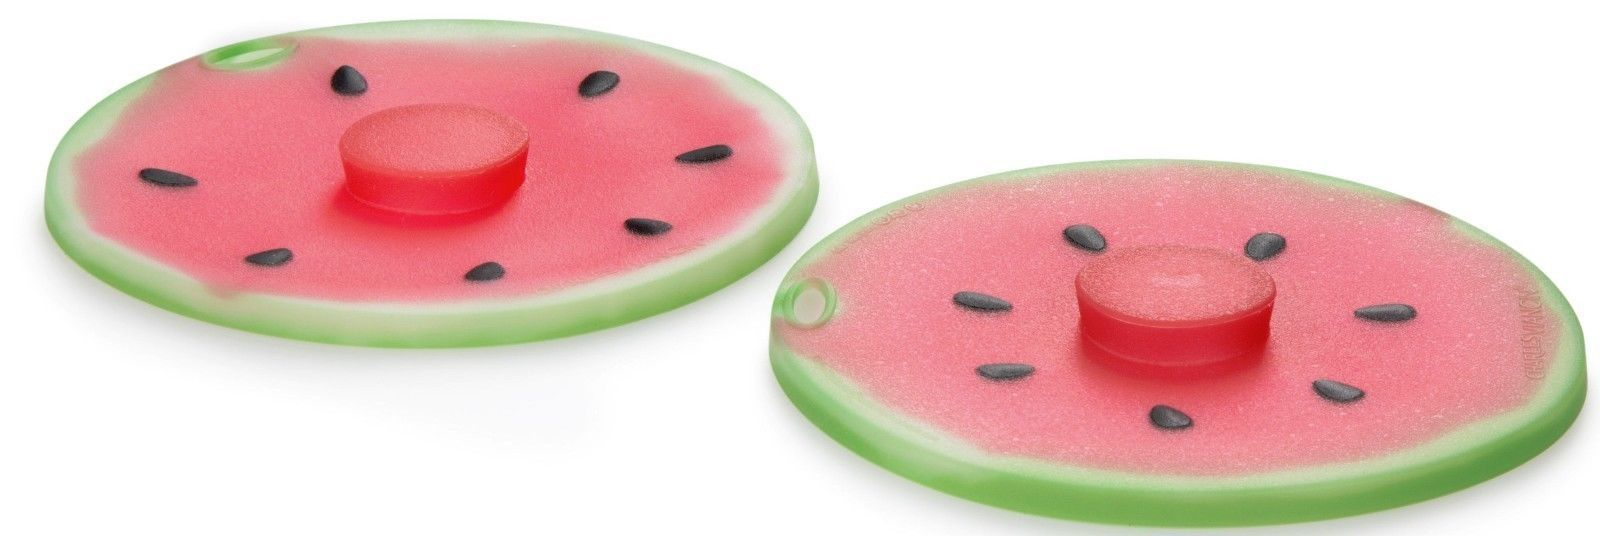 Charles Viancin 5 Pc Food Storage Reusable Silicone Suction Lid Set Watermelon